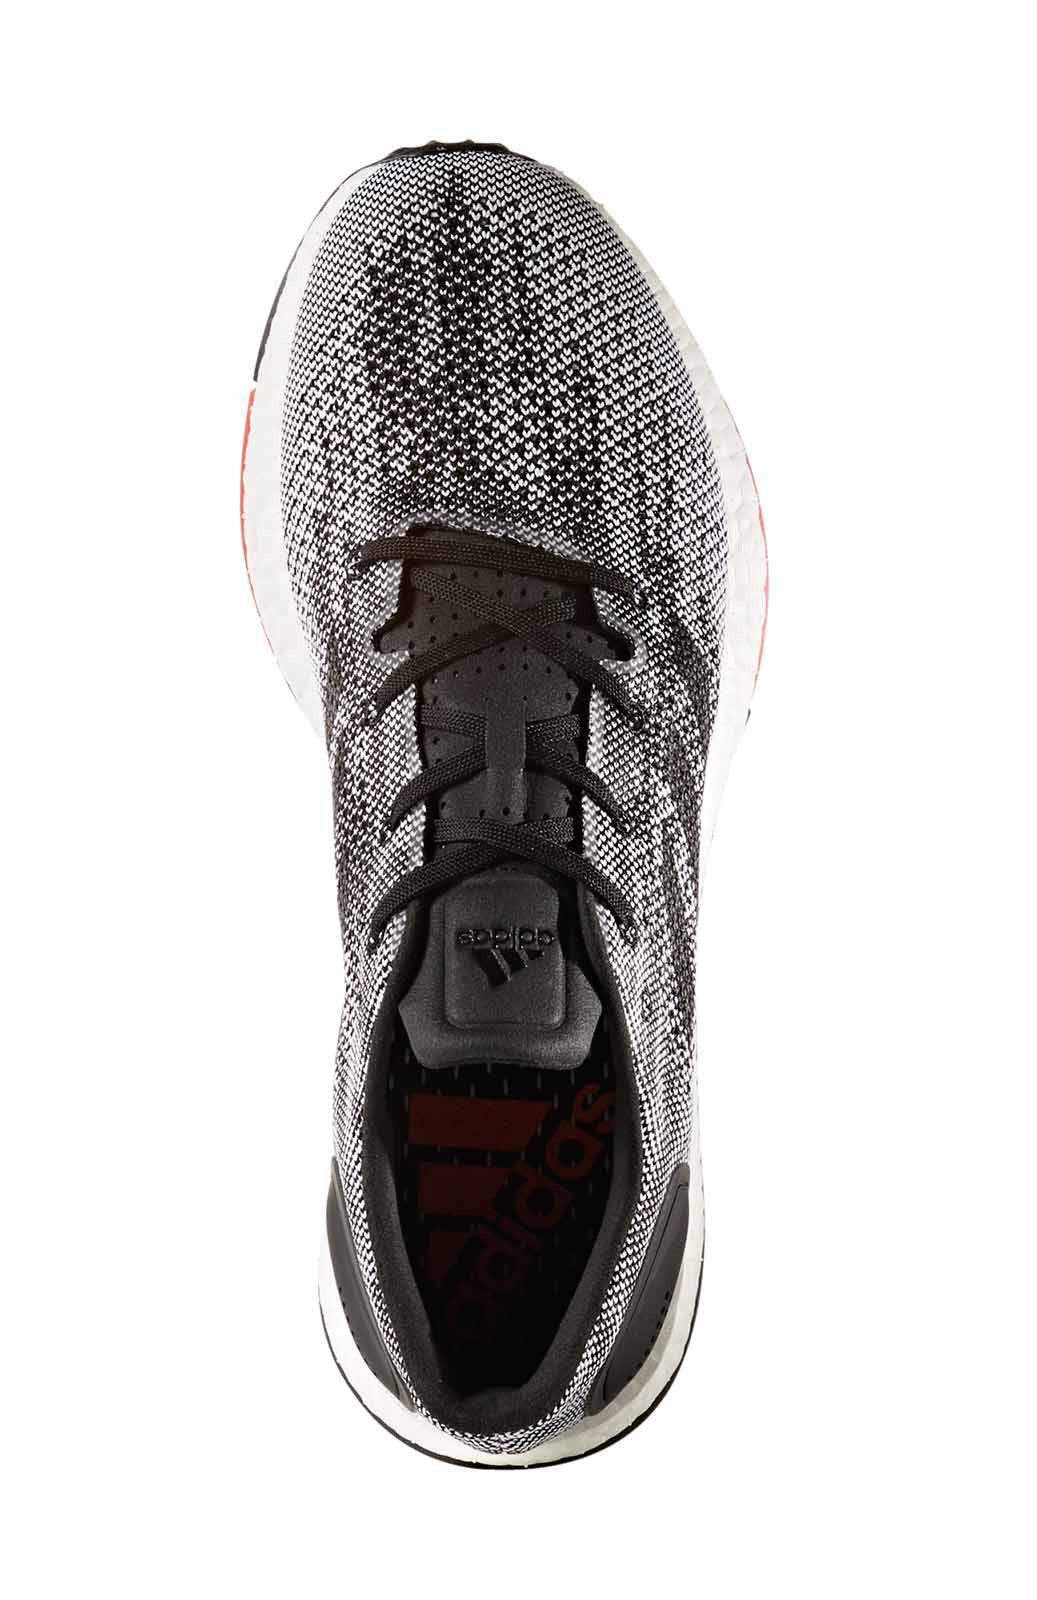 ADIDAS Men's Pure Boost DPR - Black/ Grey image 5 - The Sports Edit